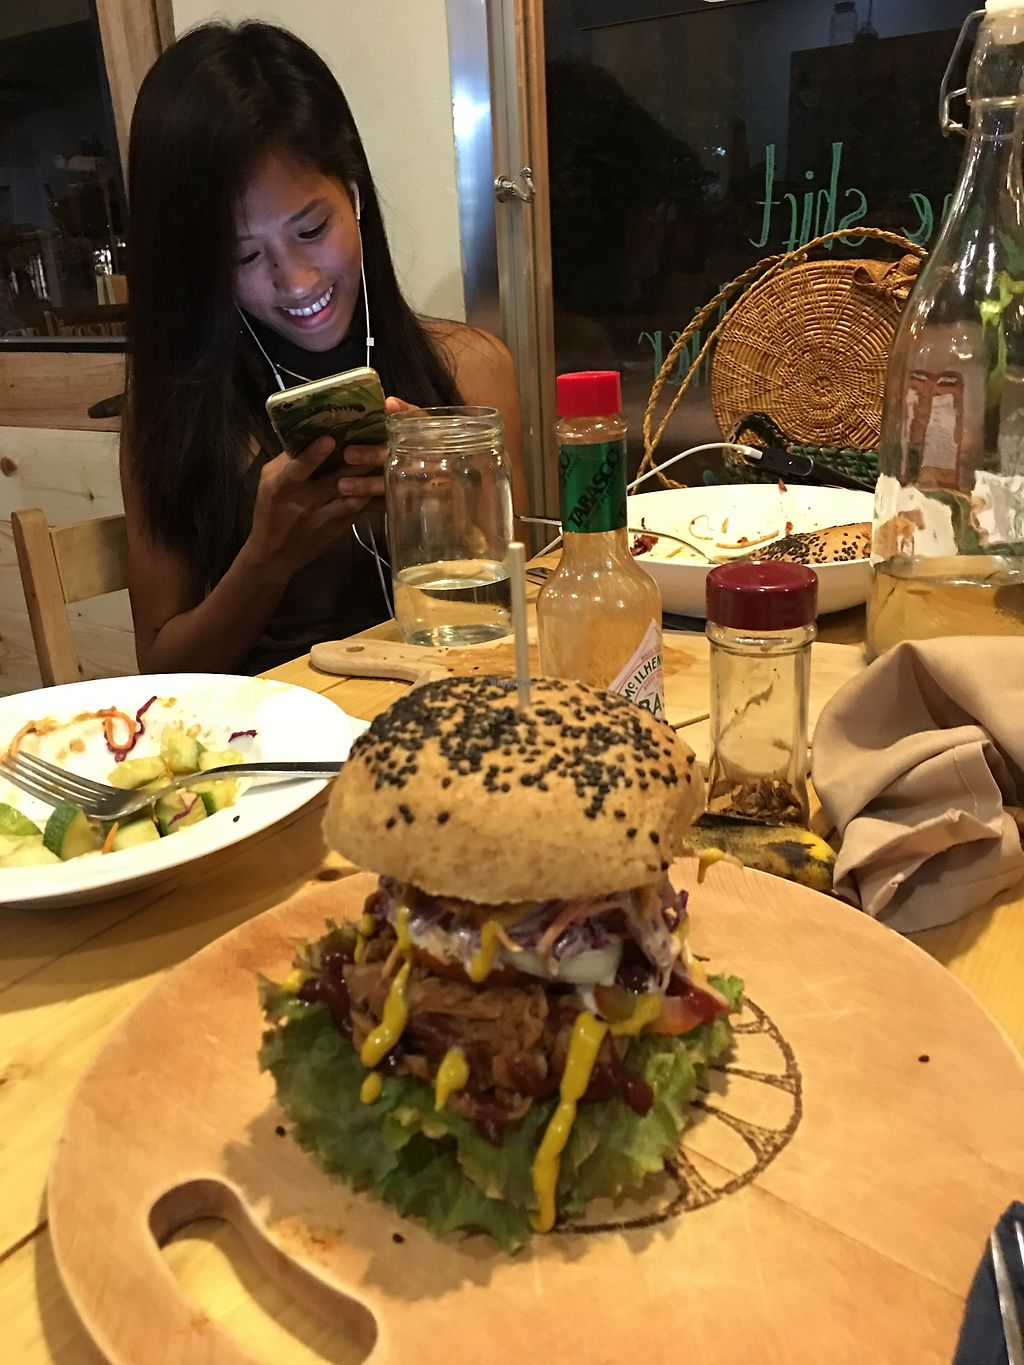 """Photo of The Vegan Dinosaur  by <a href=""""/members/profile/Durianrider"""">Durianrider</a> <br/>Burgers <br/> October 11, 2017  - <a href='/contact/abuse/image/59921/314191'>Report</a>"""